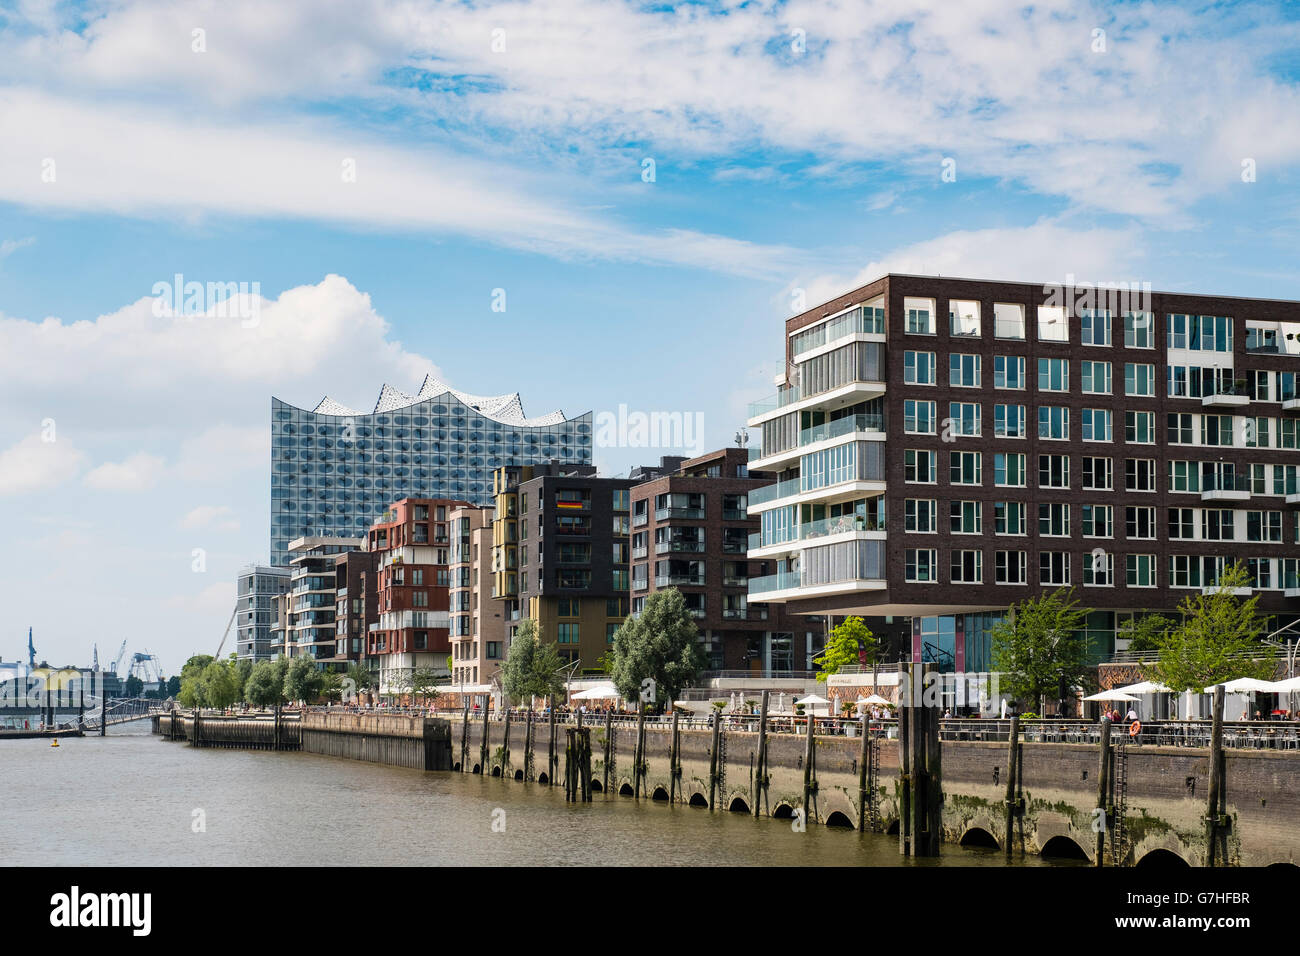 Stock photo hamburg germany riverside new - Modern Luxury Apartment Blocks Part Of Modern Hafencity Property Development In Hamburg Germany